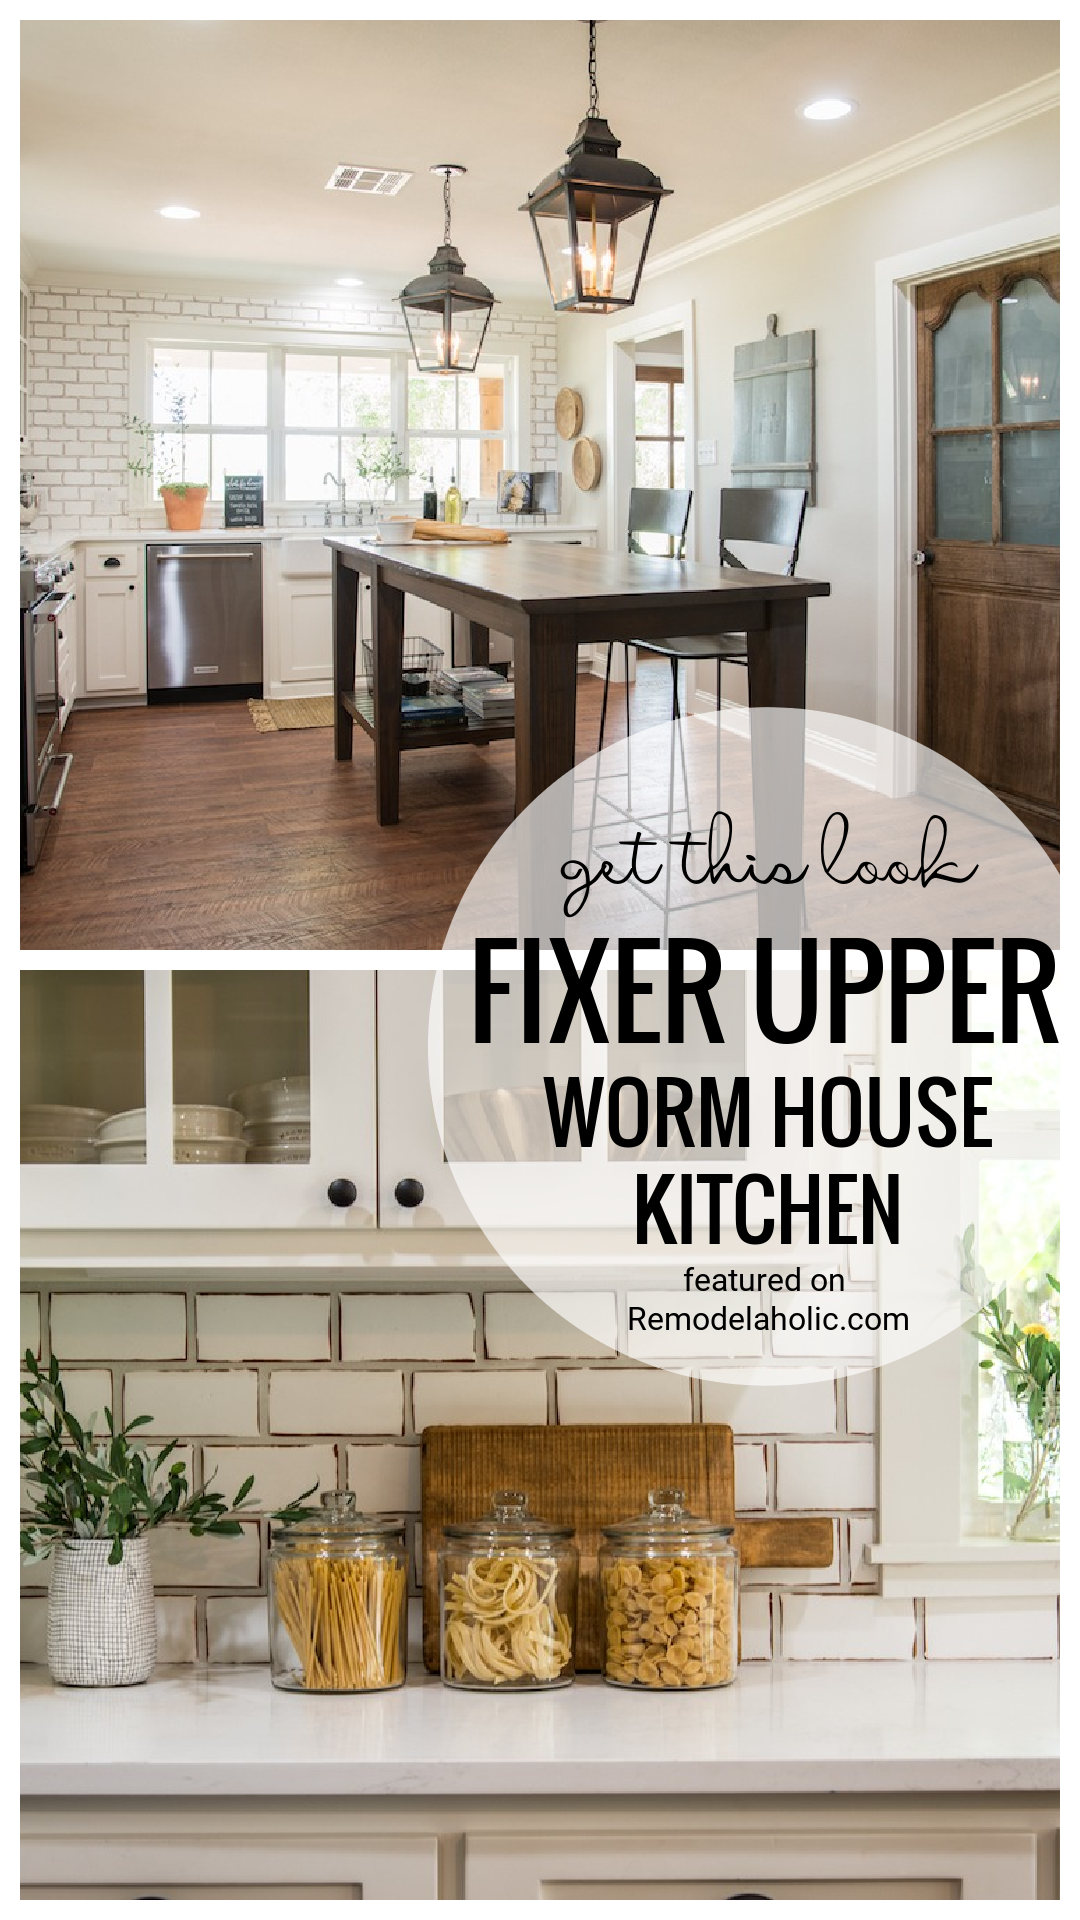 Get This Look Fixer Upper Worm House Kitchen Featured On Remodelaholic.com